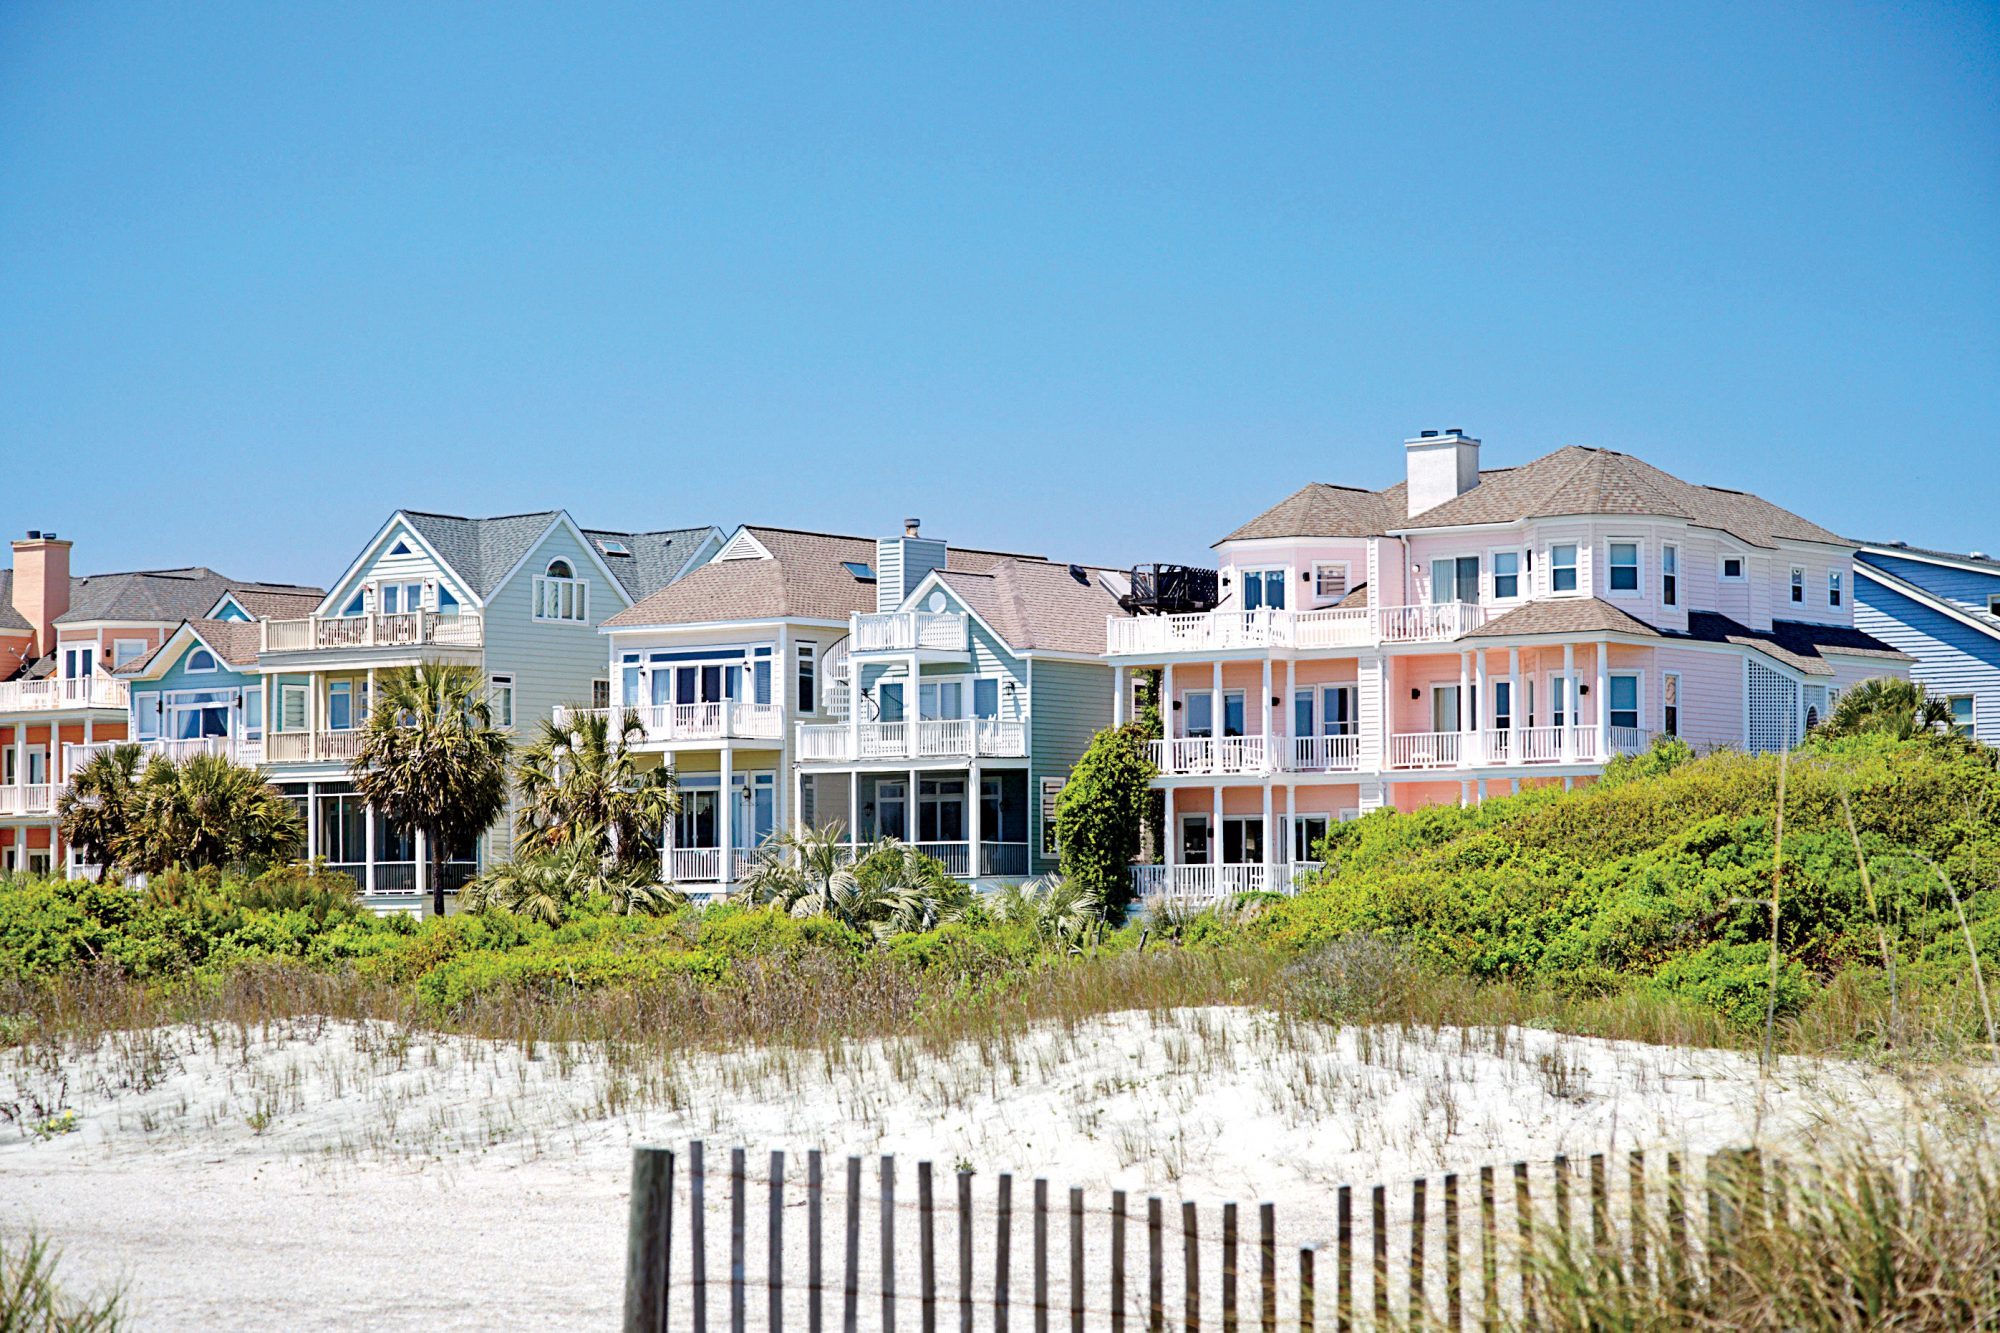 10. Isle of Palms, South Carolina